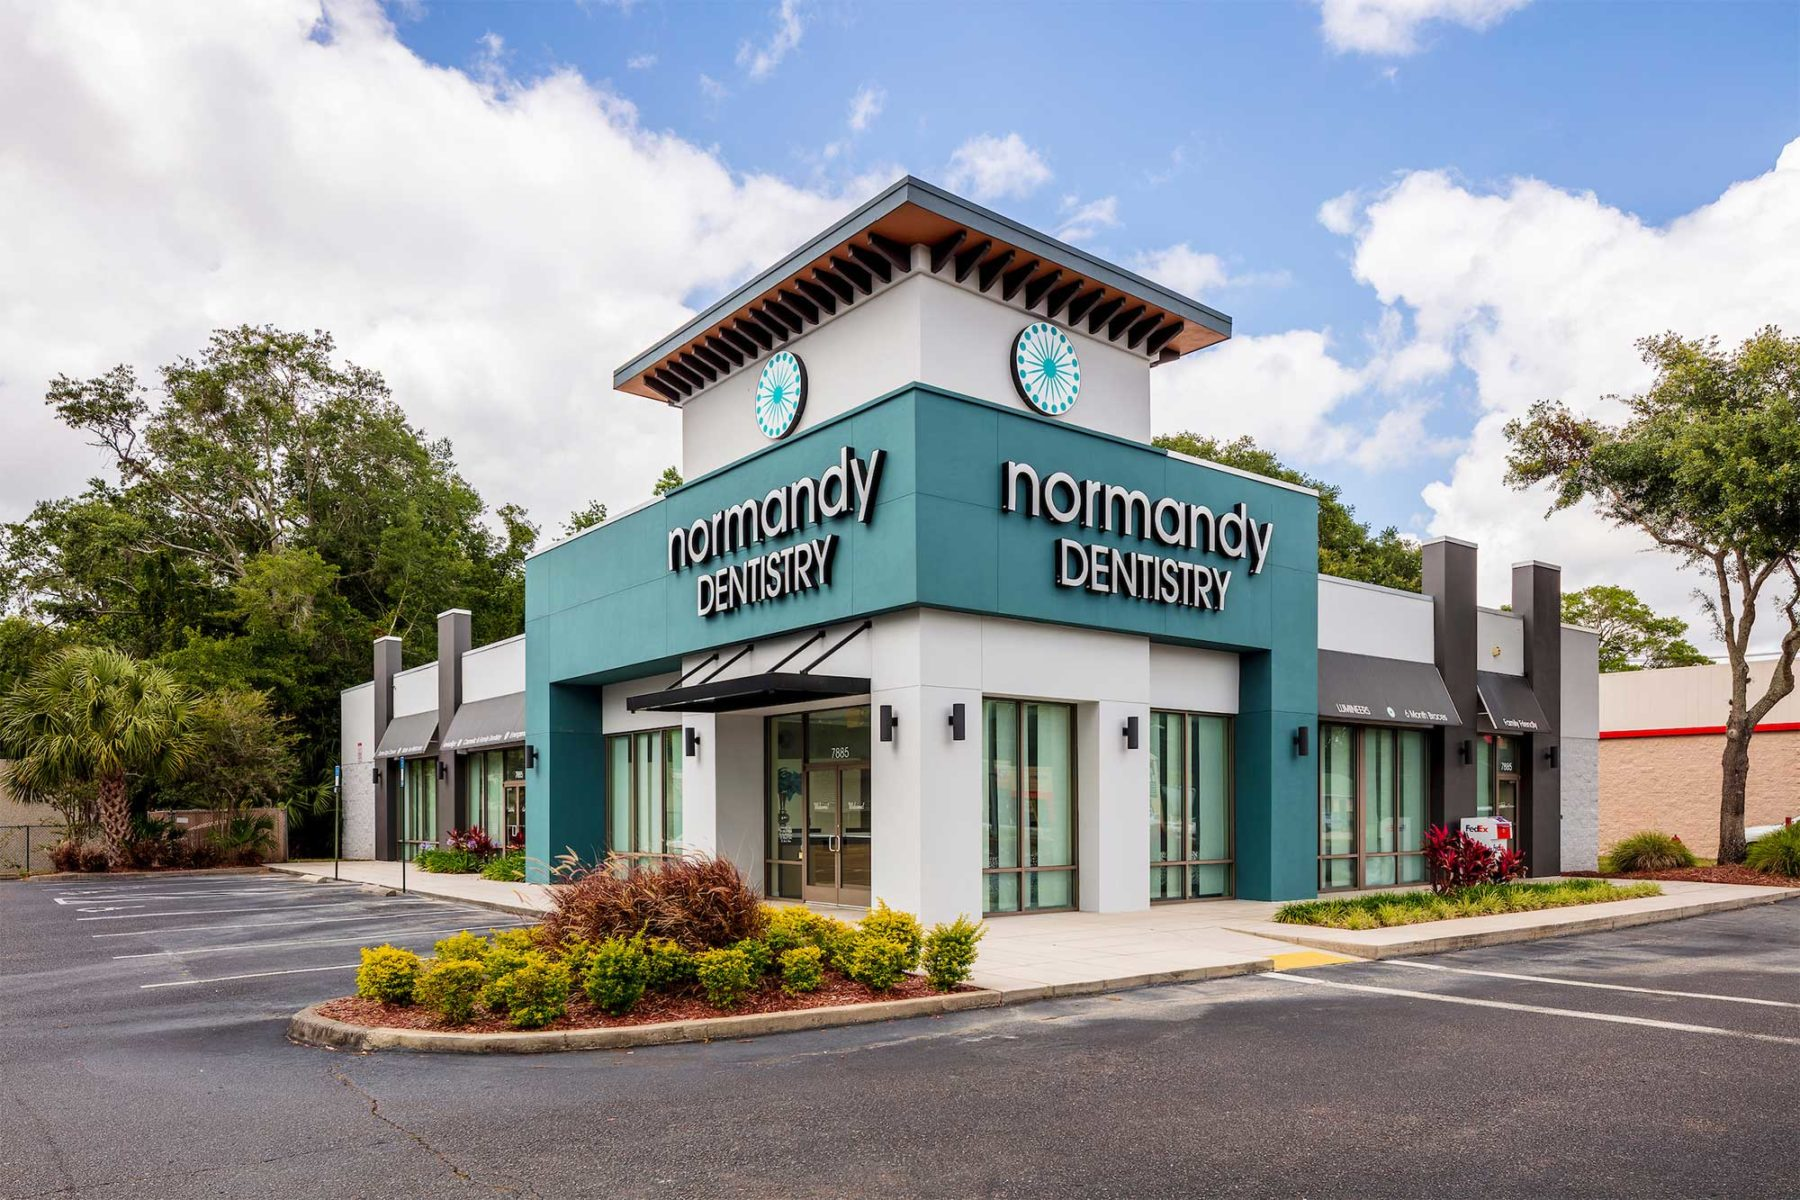 The Normandy Dentistry building in Jacksonville, Florida